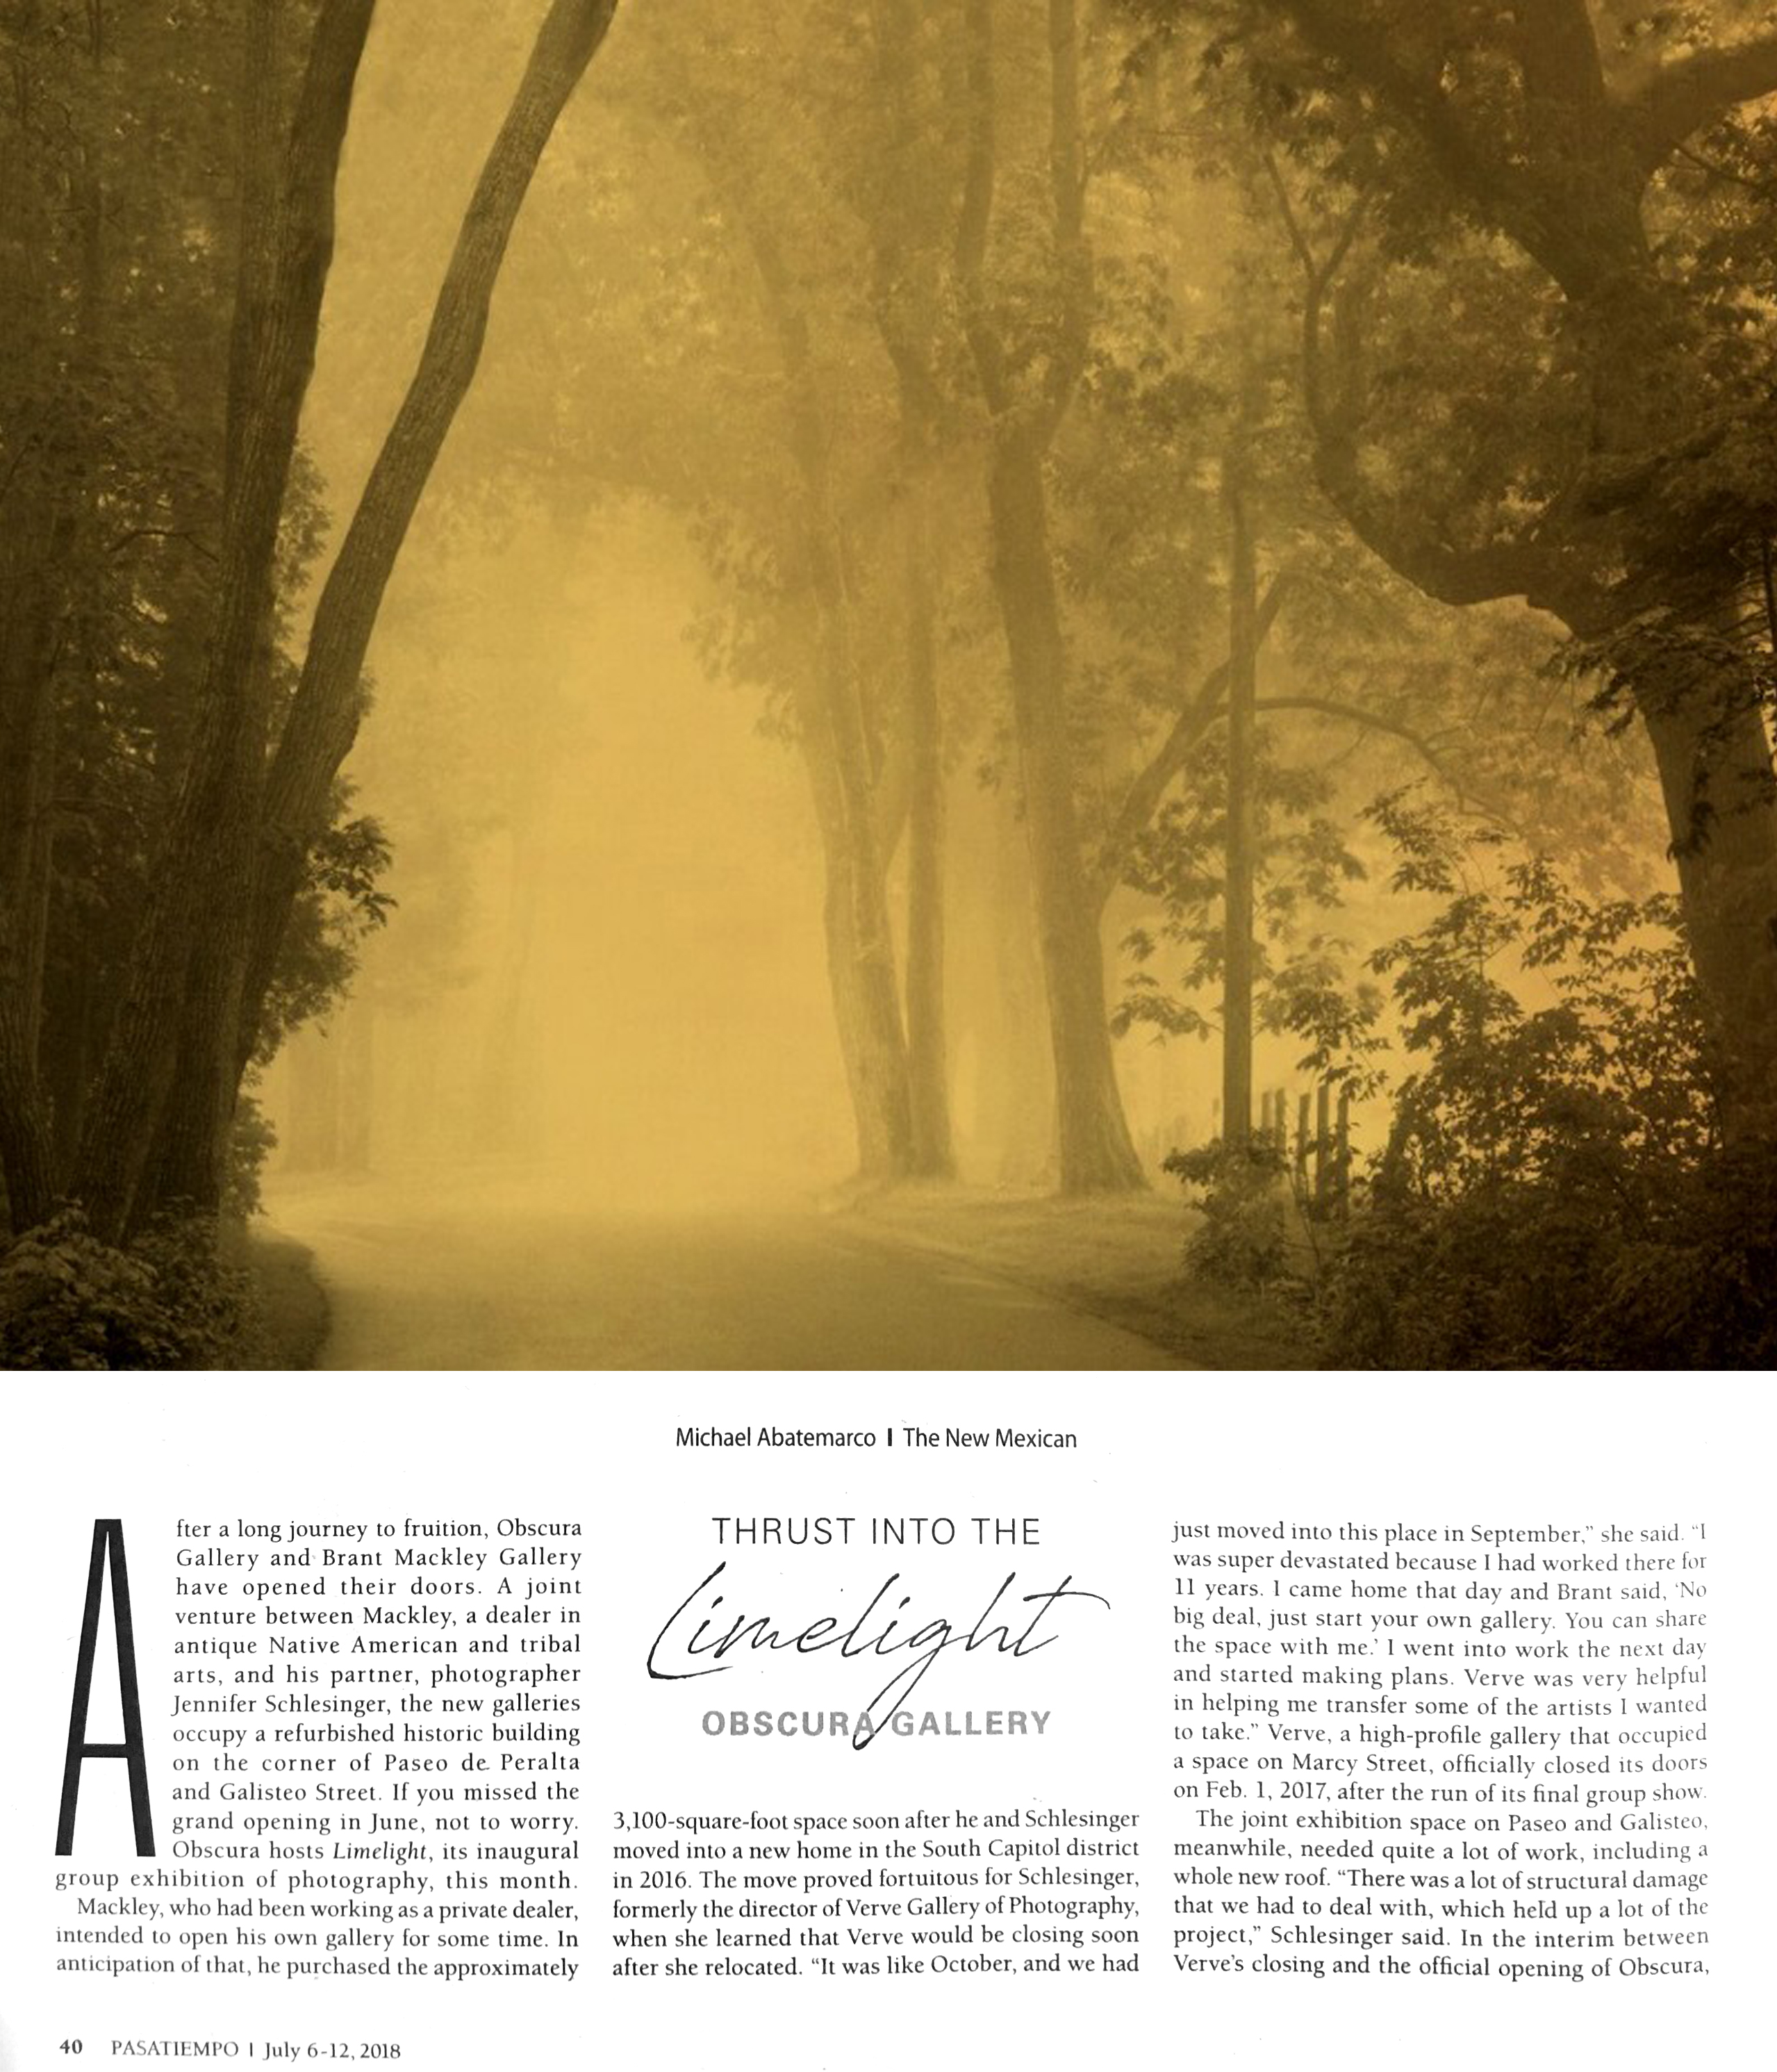 pasatiempo article on our inaugural exhibition limelight obscura